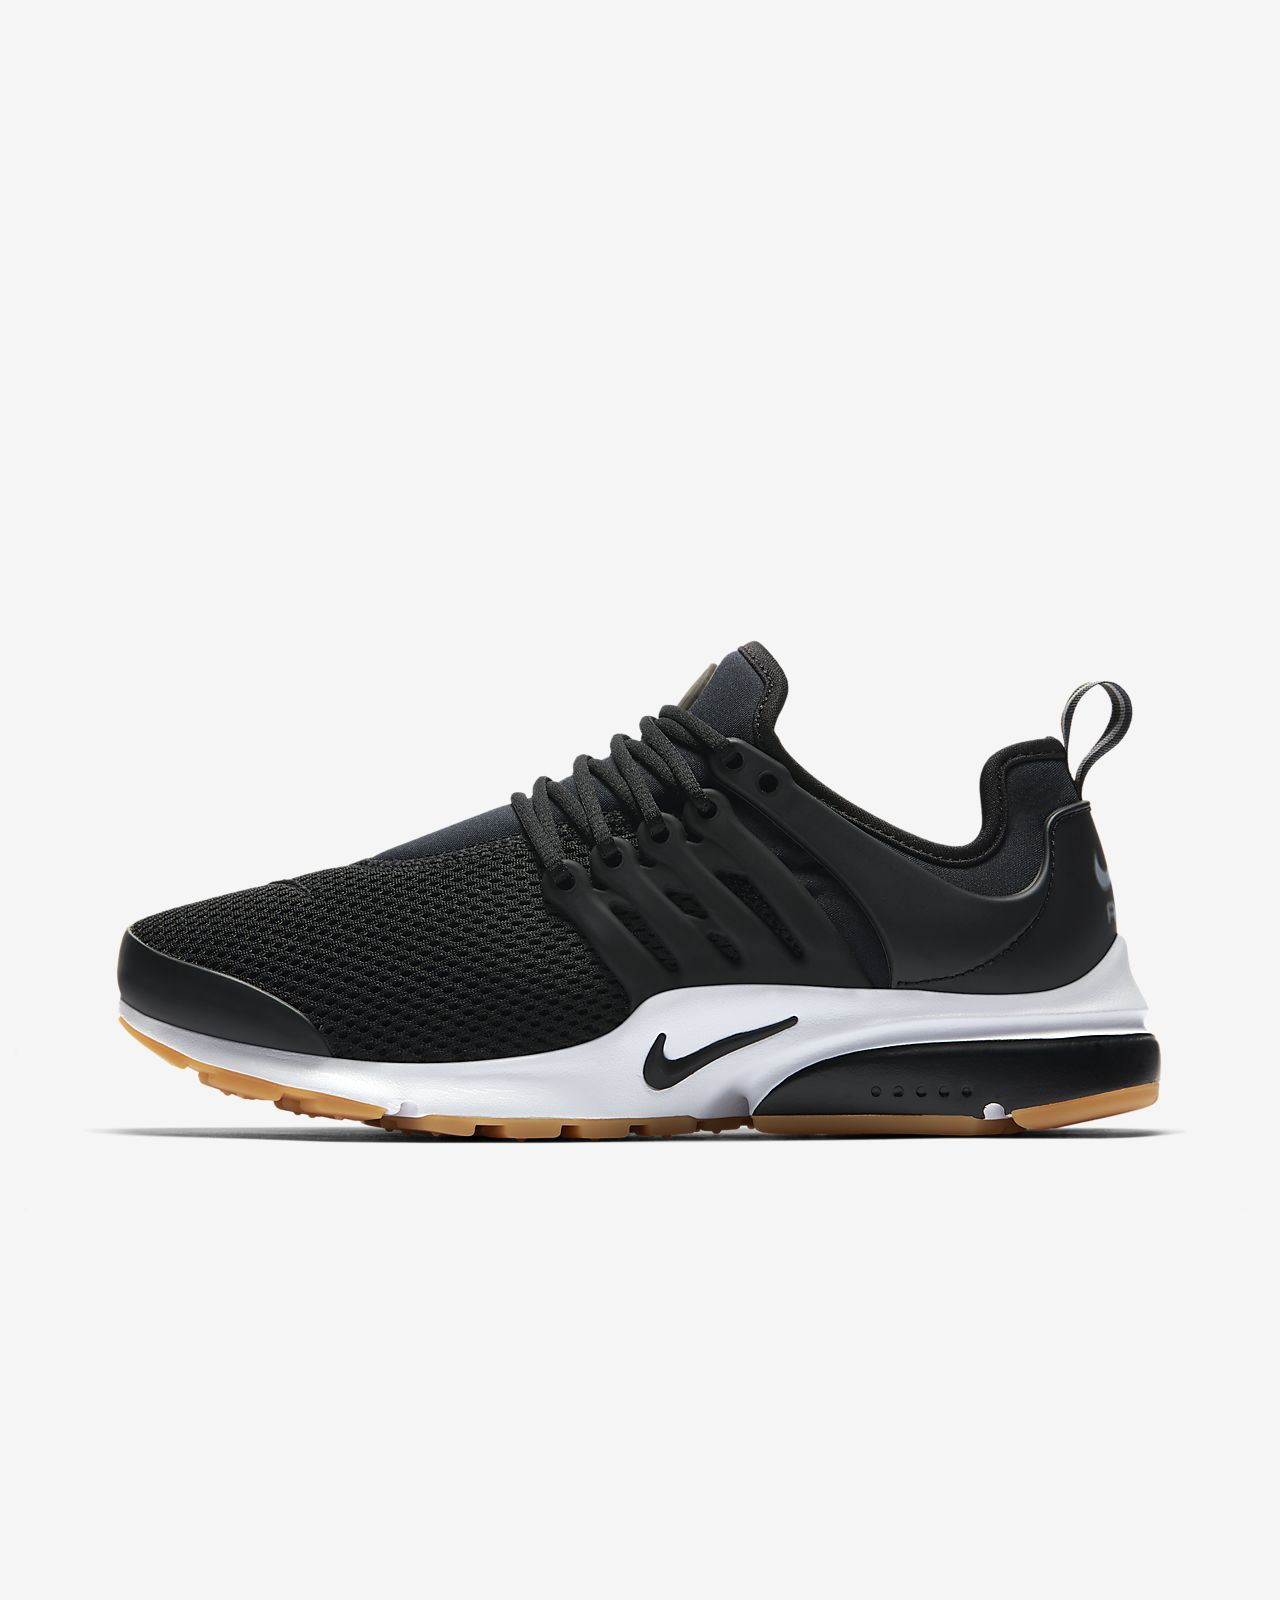 d0a3ace3c00f Nike Air Presto Women s Shoe. Nike.com